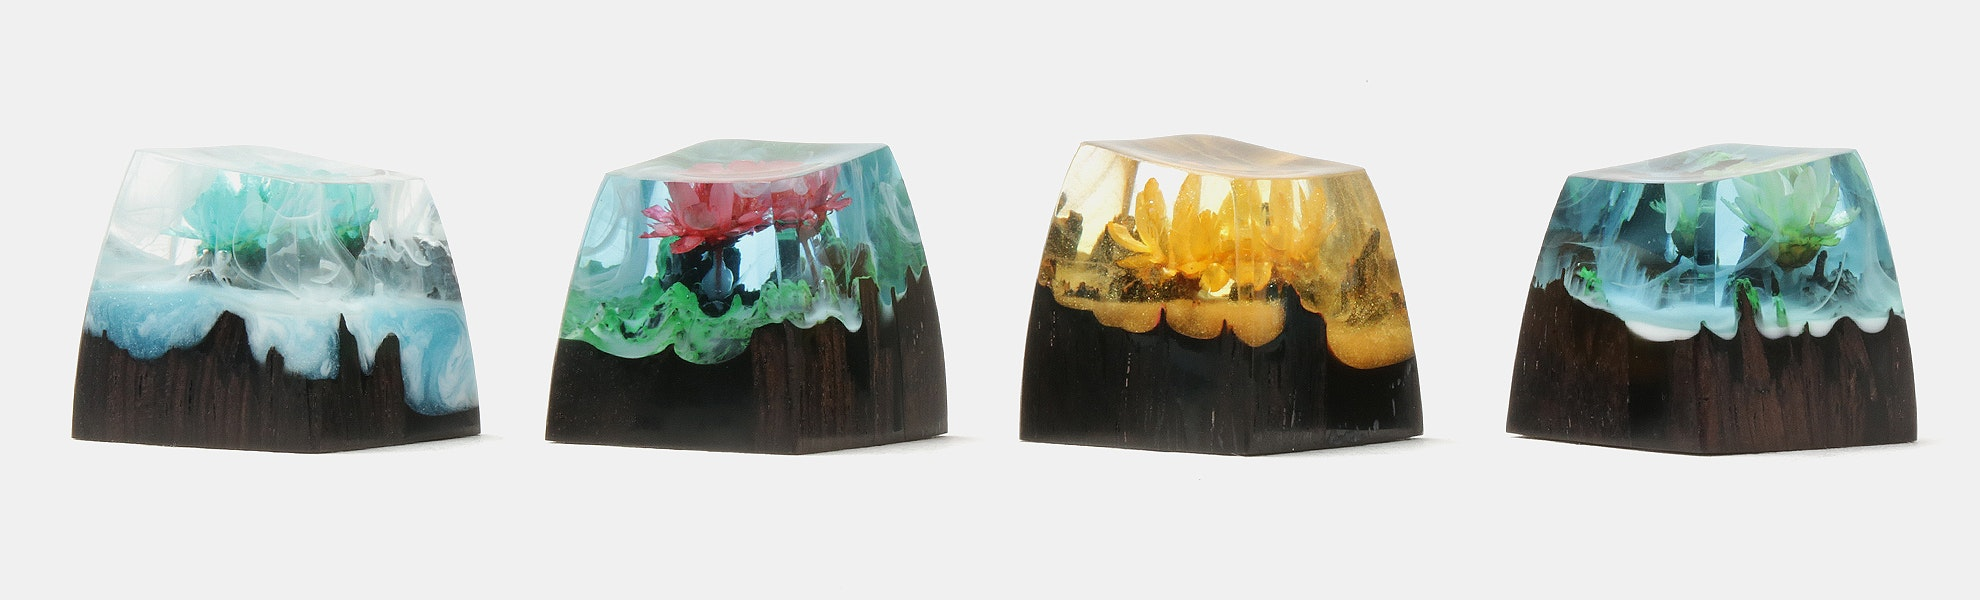 BKD 4 Seasons Resin & Wood Artisan Keycap